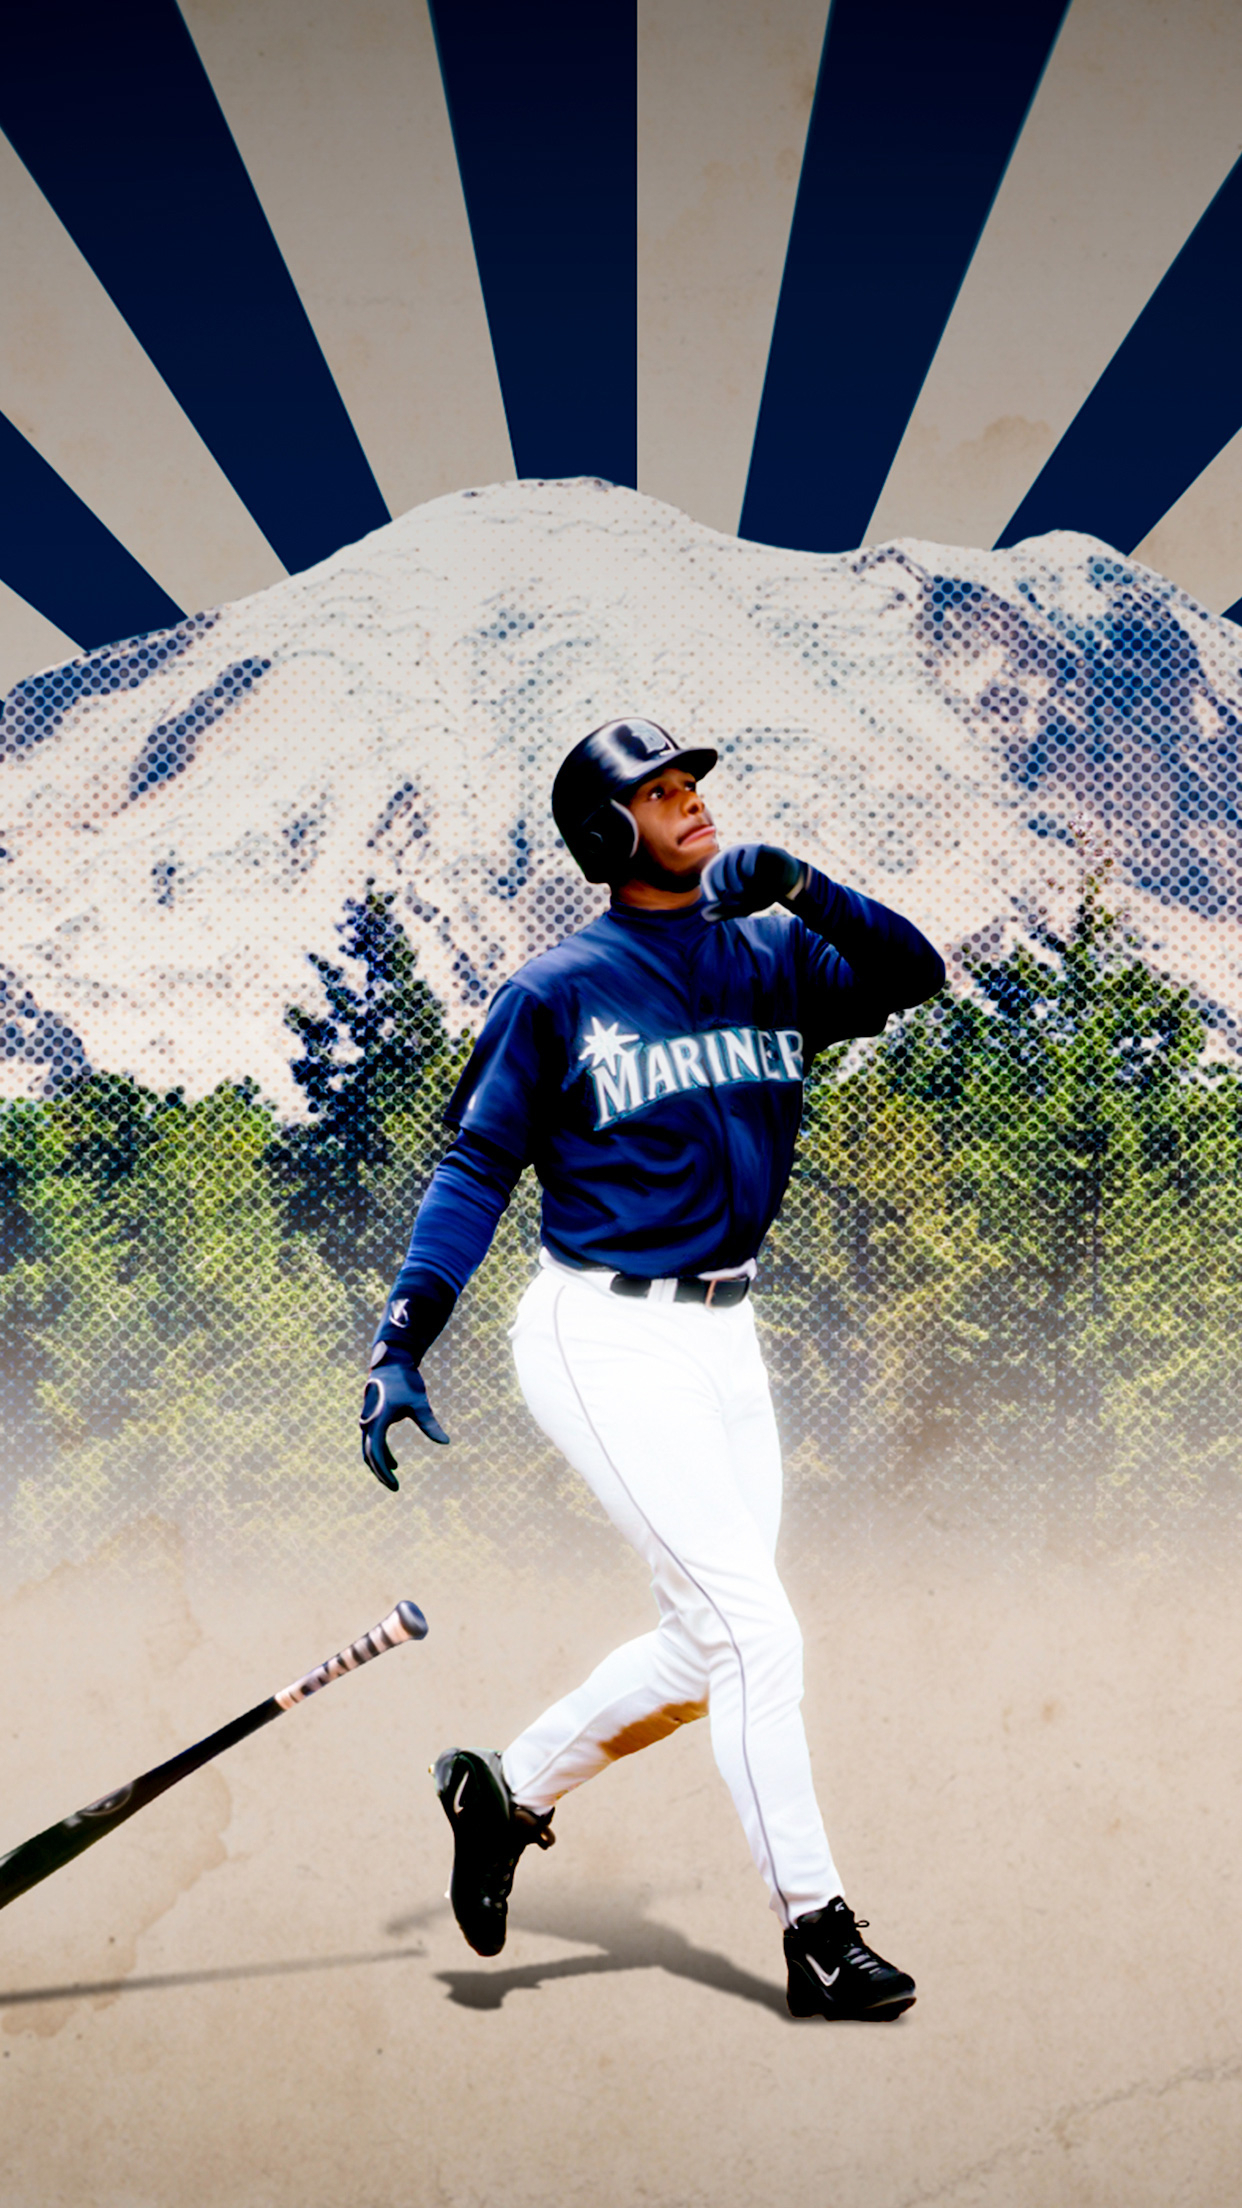 mariners players wallpapers | seattle mariners